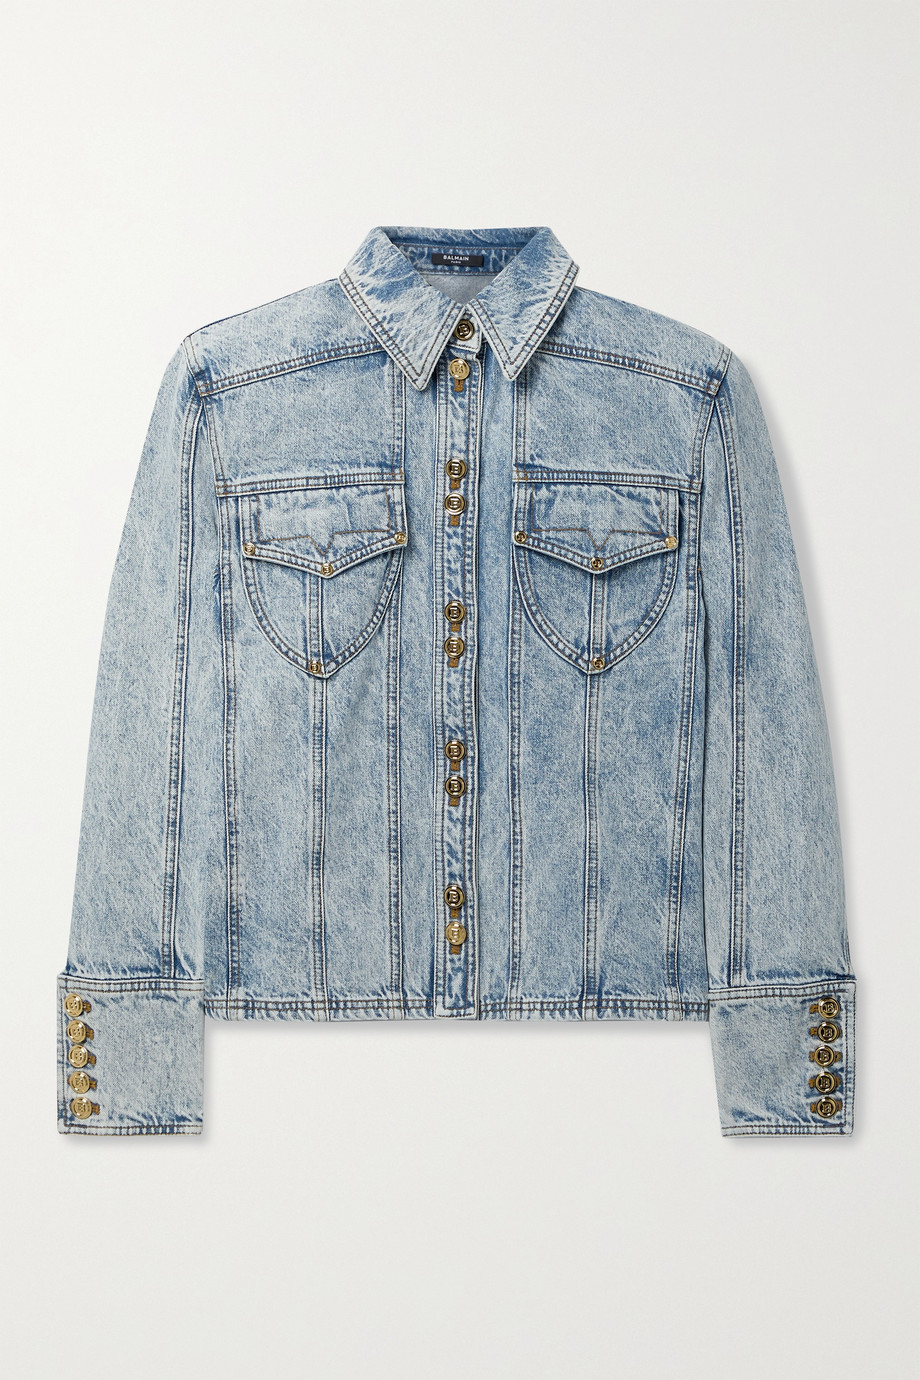 Balmain Acid-wash denim jacket